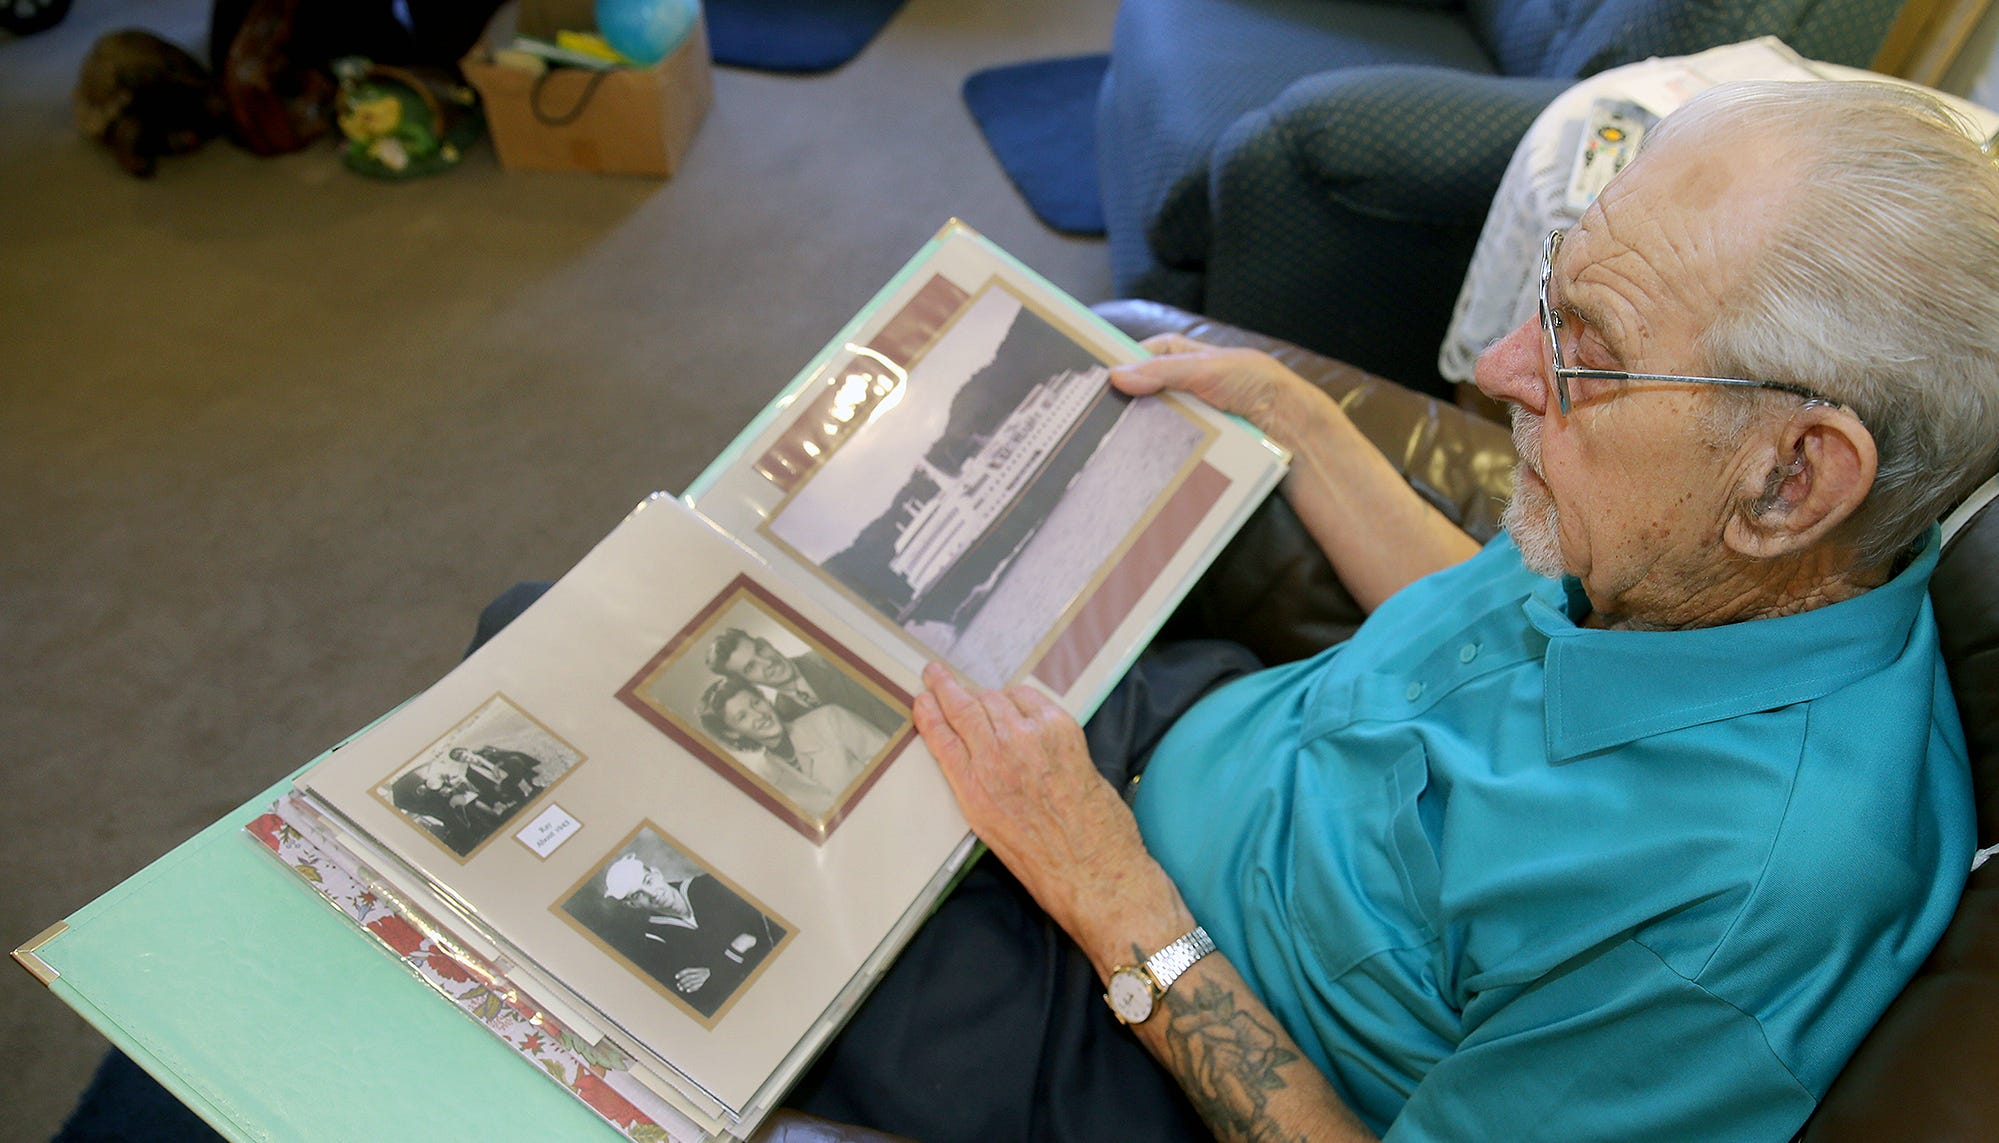 Washington State native Ray Tee served aboard a destroyer surviving kamikaze attacks in the Navy and going to Nagasaki during World War II. He now lives in Silverdale.